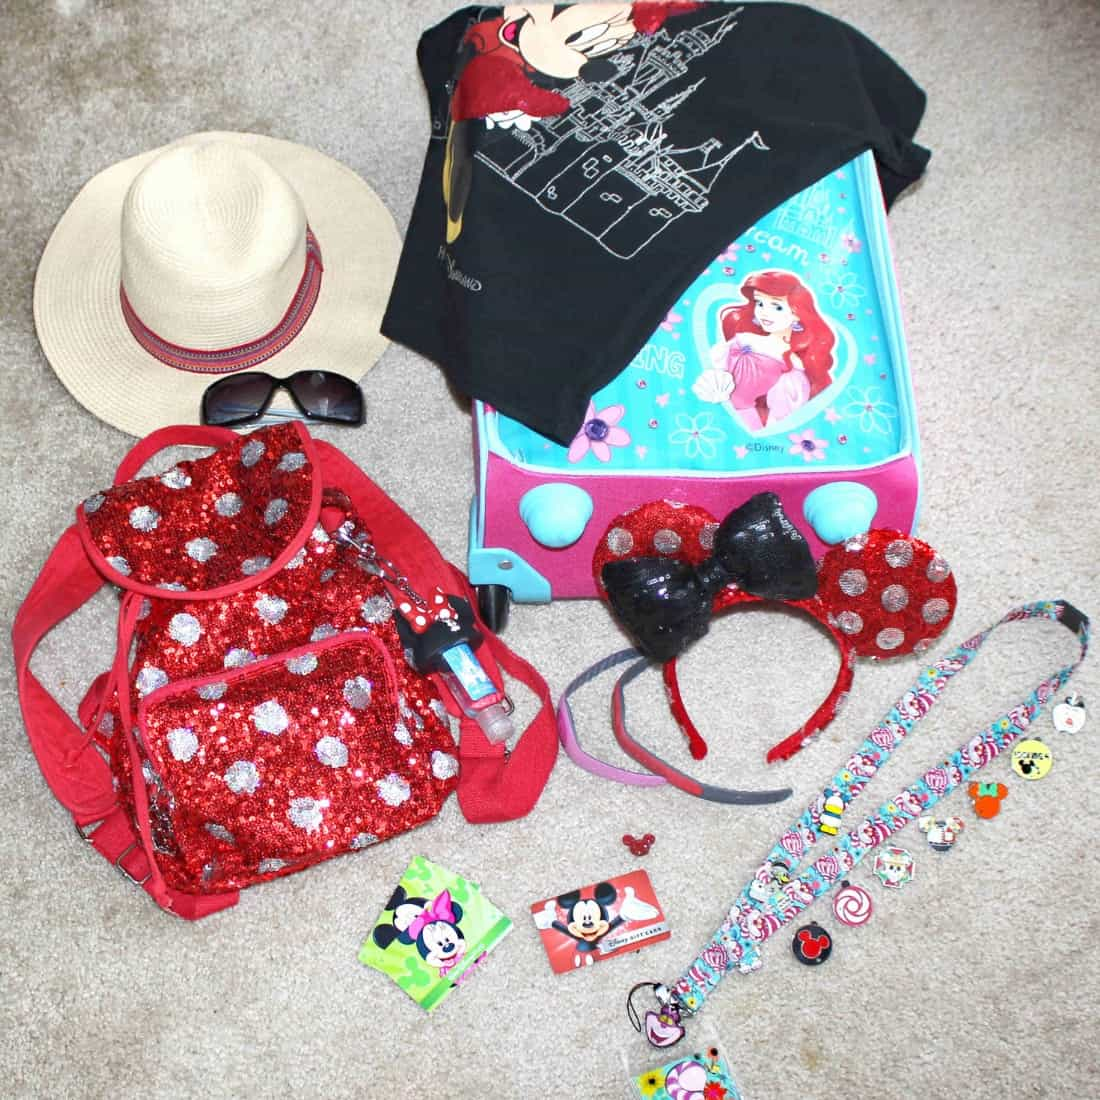 Disney World Packing List – Your Ultimate Checklist